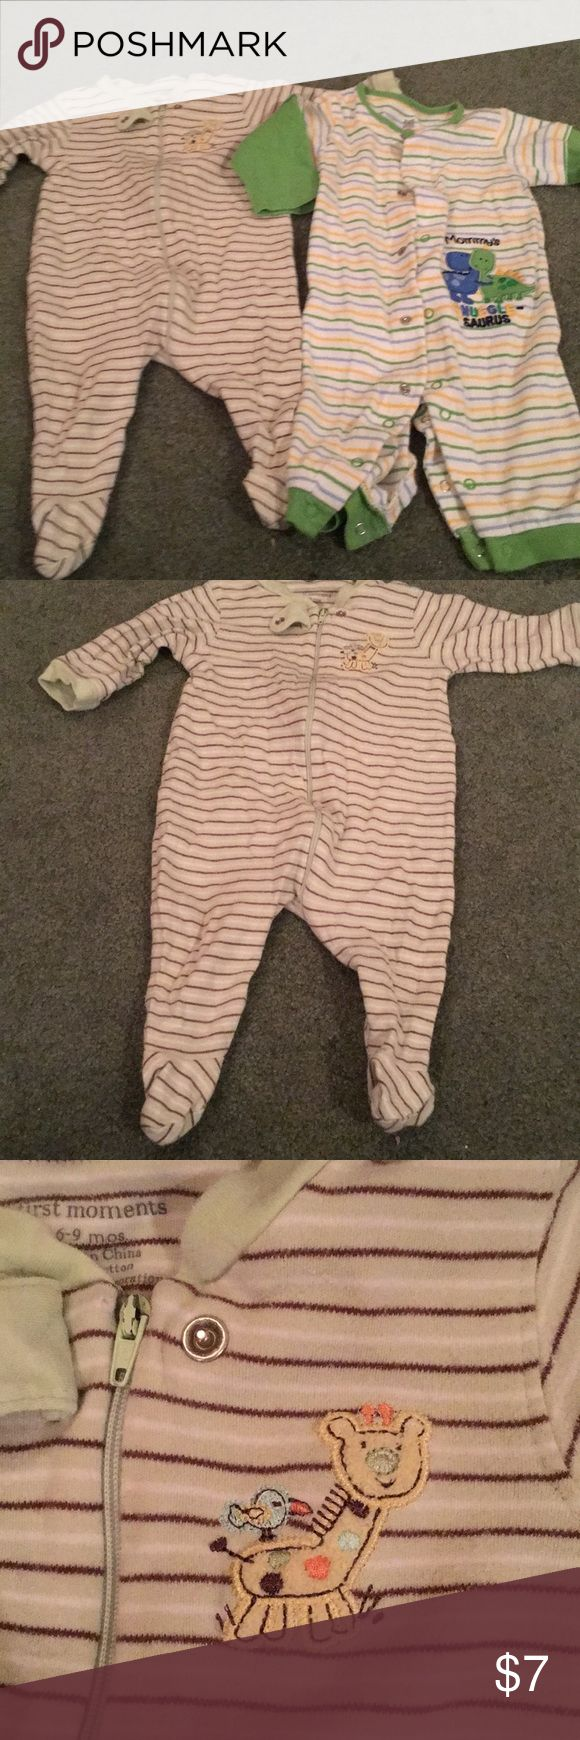 Two pairs of pajamas First pair is a zip up size 6-9 months and second set is snaps with exposed feet in size 6 months. Gender neutral colors. Both in excellent used condition from smoke free home. No stains, tears or holes. Pajamas Pajama Sets